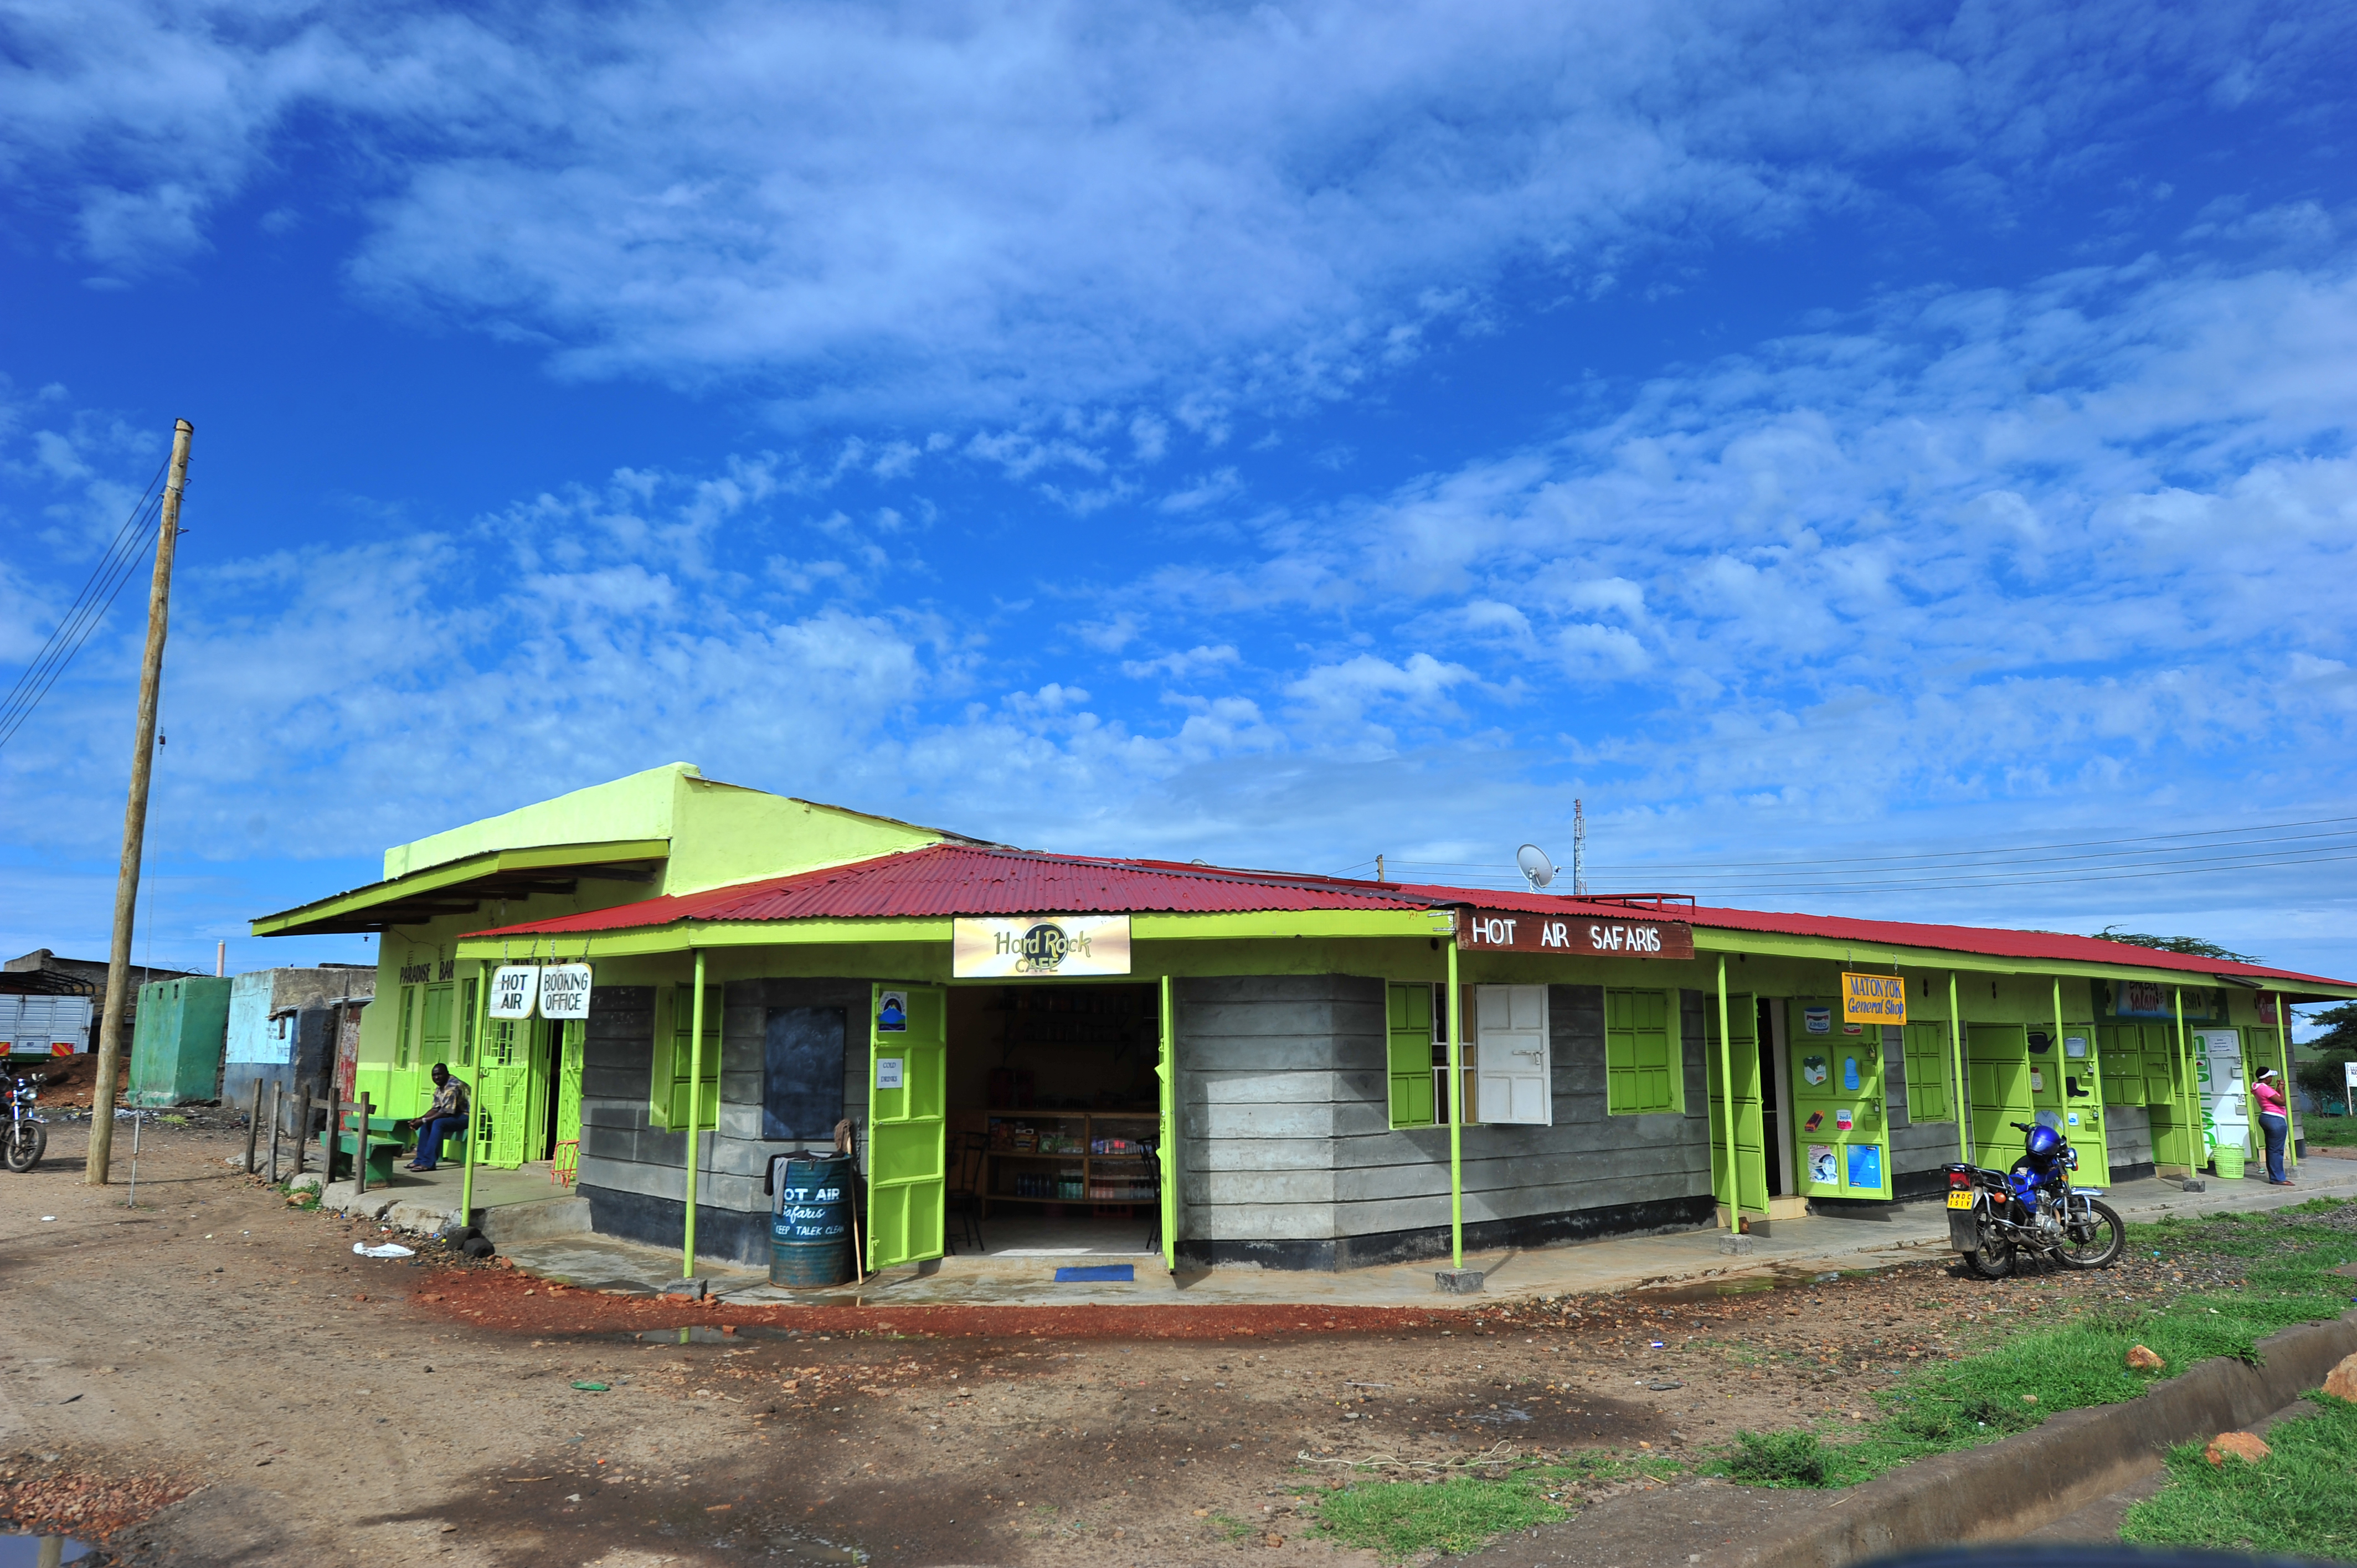 Complete power lines next to a commercial property in Talek town. Through Talek Power, GIZ and other partners have constructed a solar power grid which will connect residents of Talek town in Narok to power for domestic and commercial use.